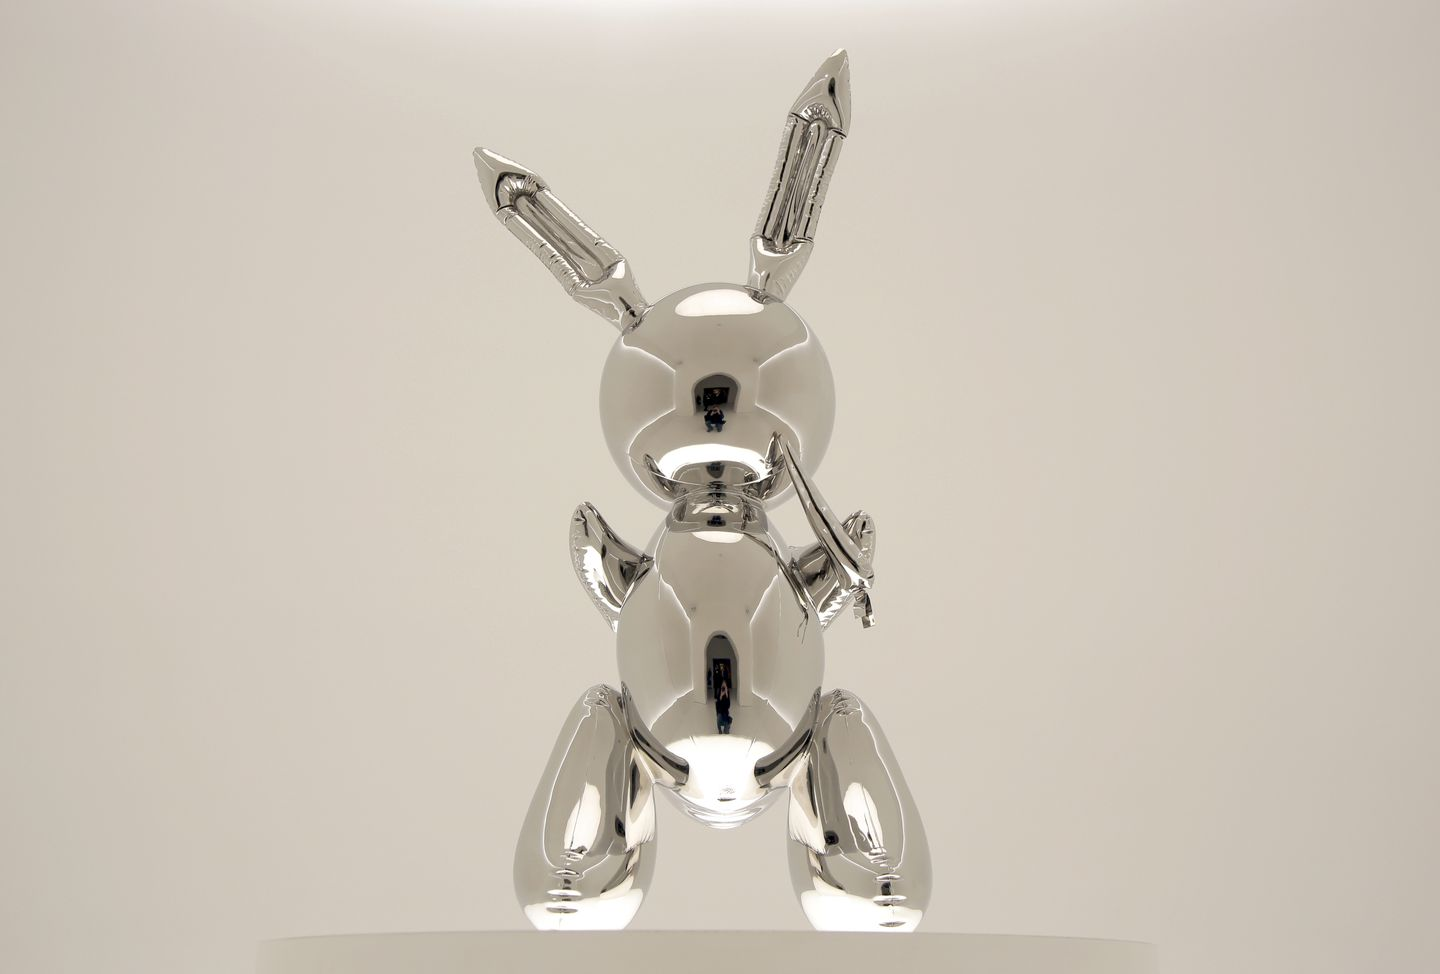 Rabbit sculpture sells for US$91m